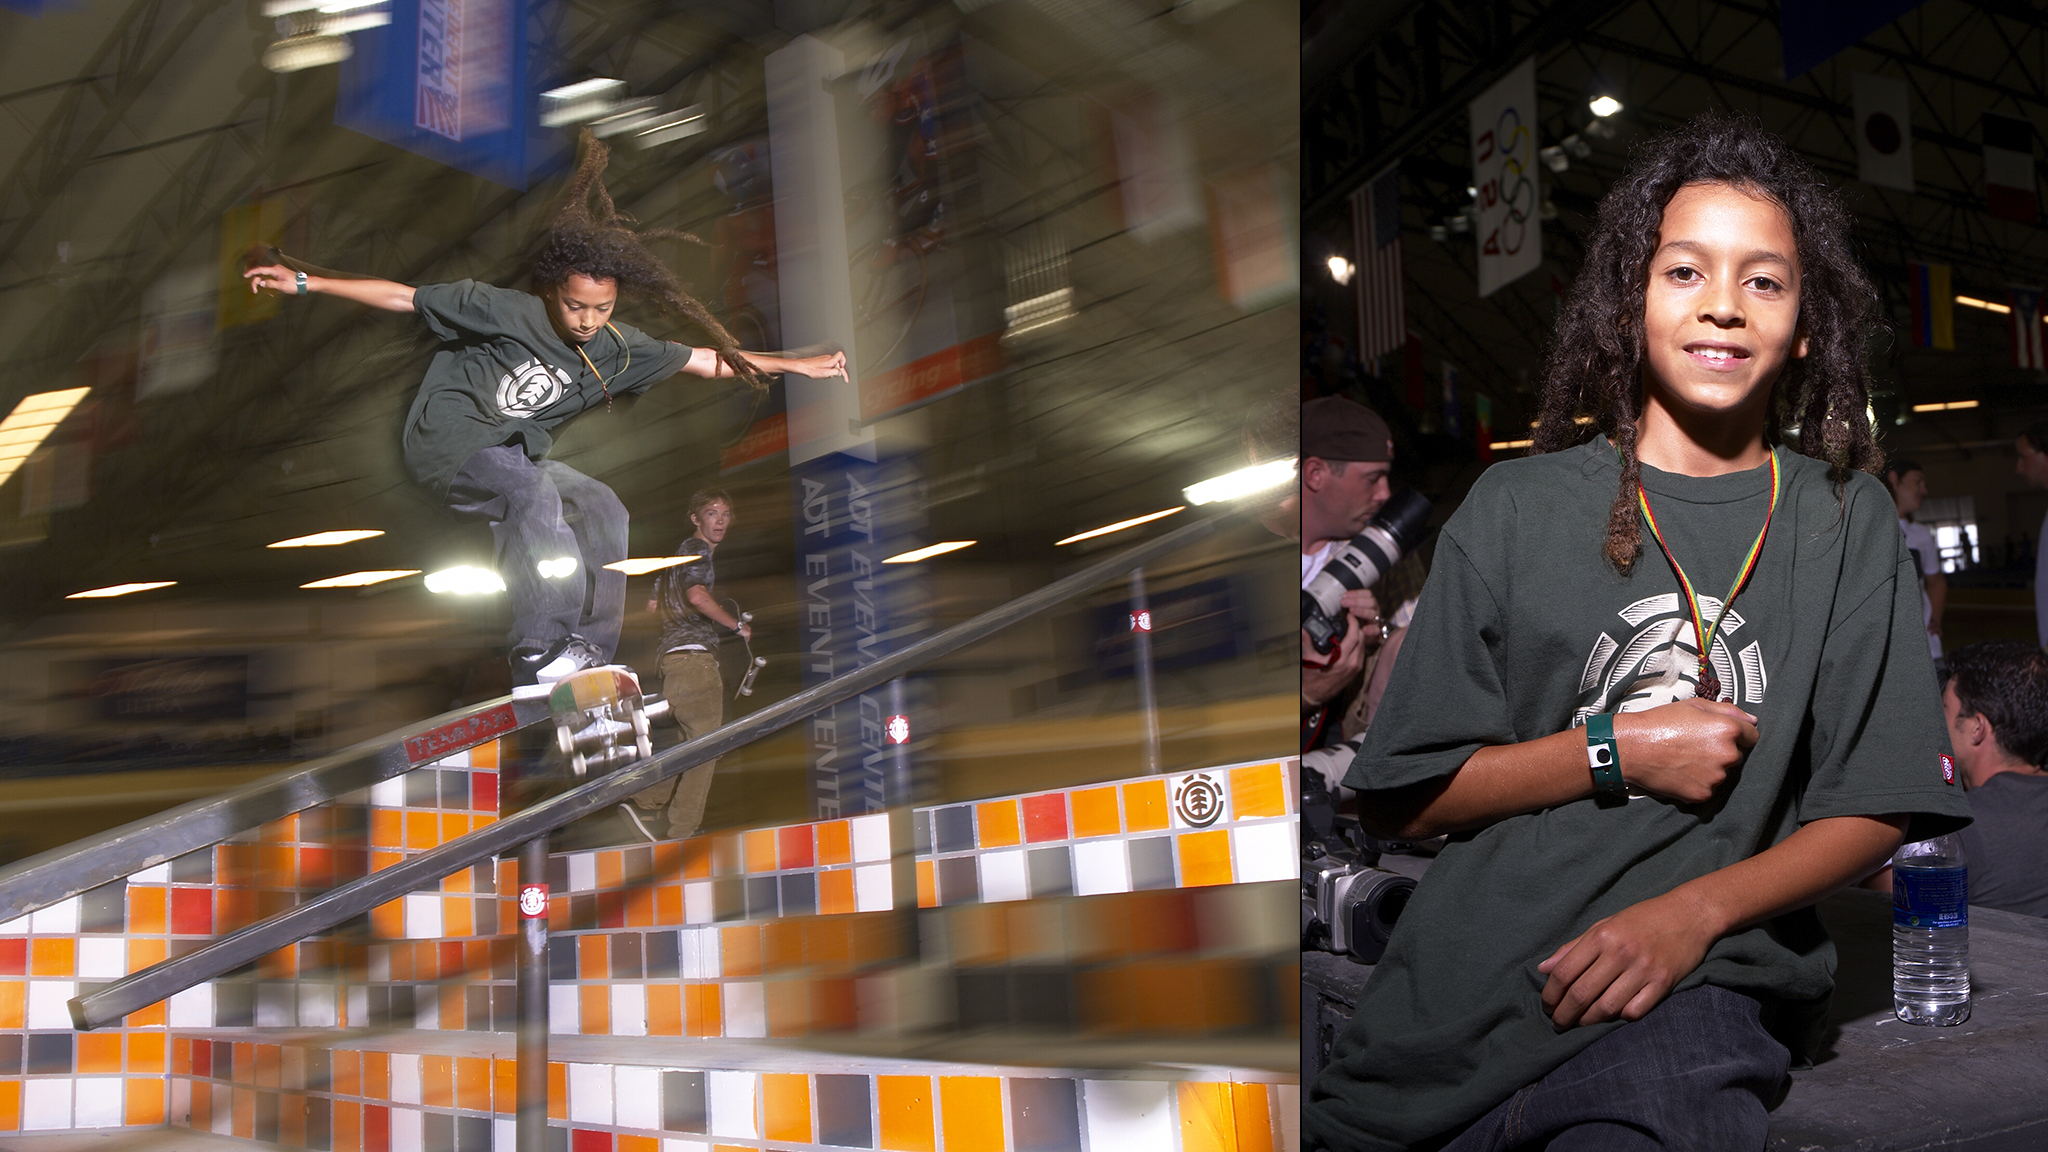 Nyjah Huston makes X Games debut